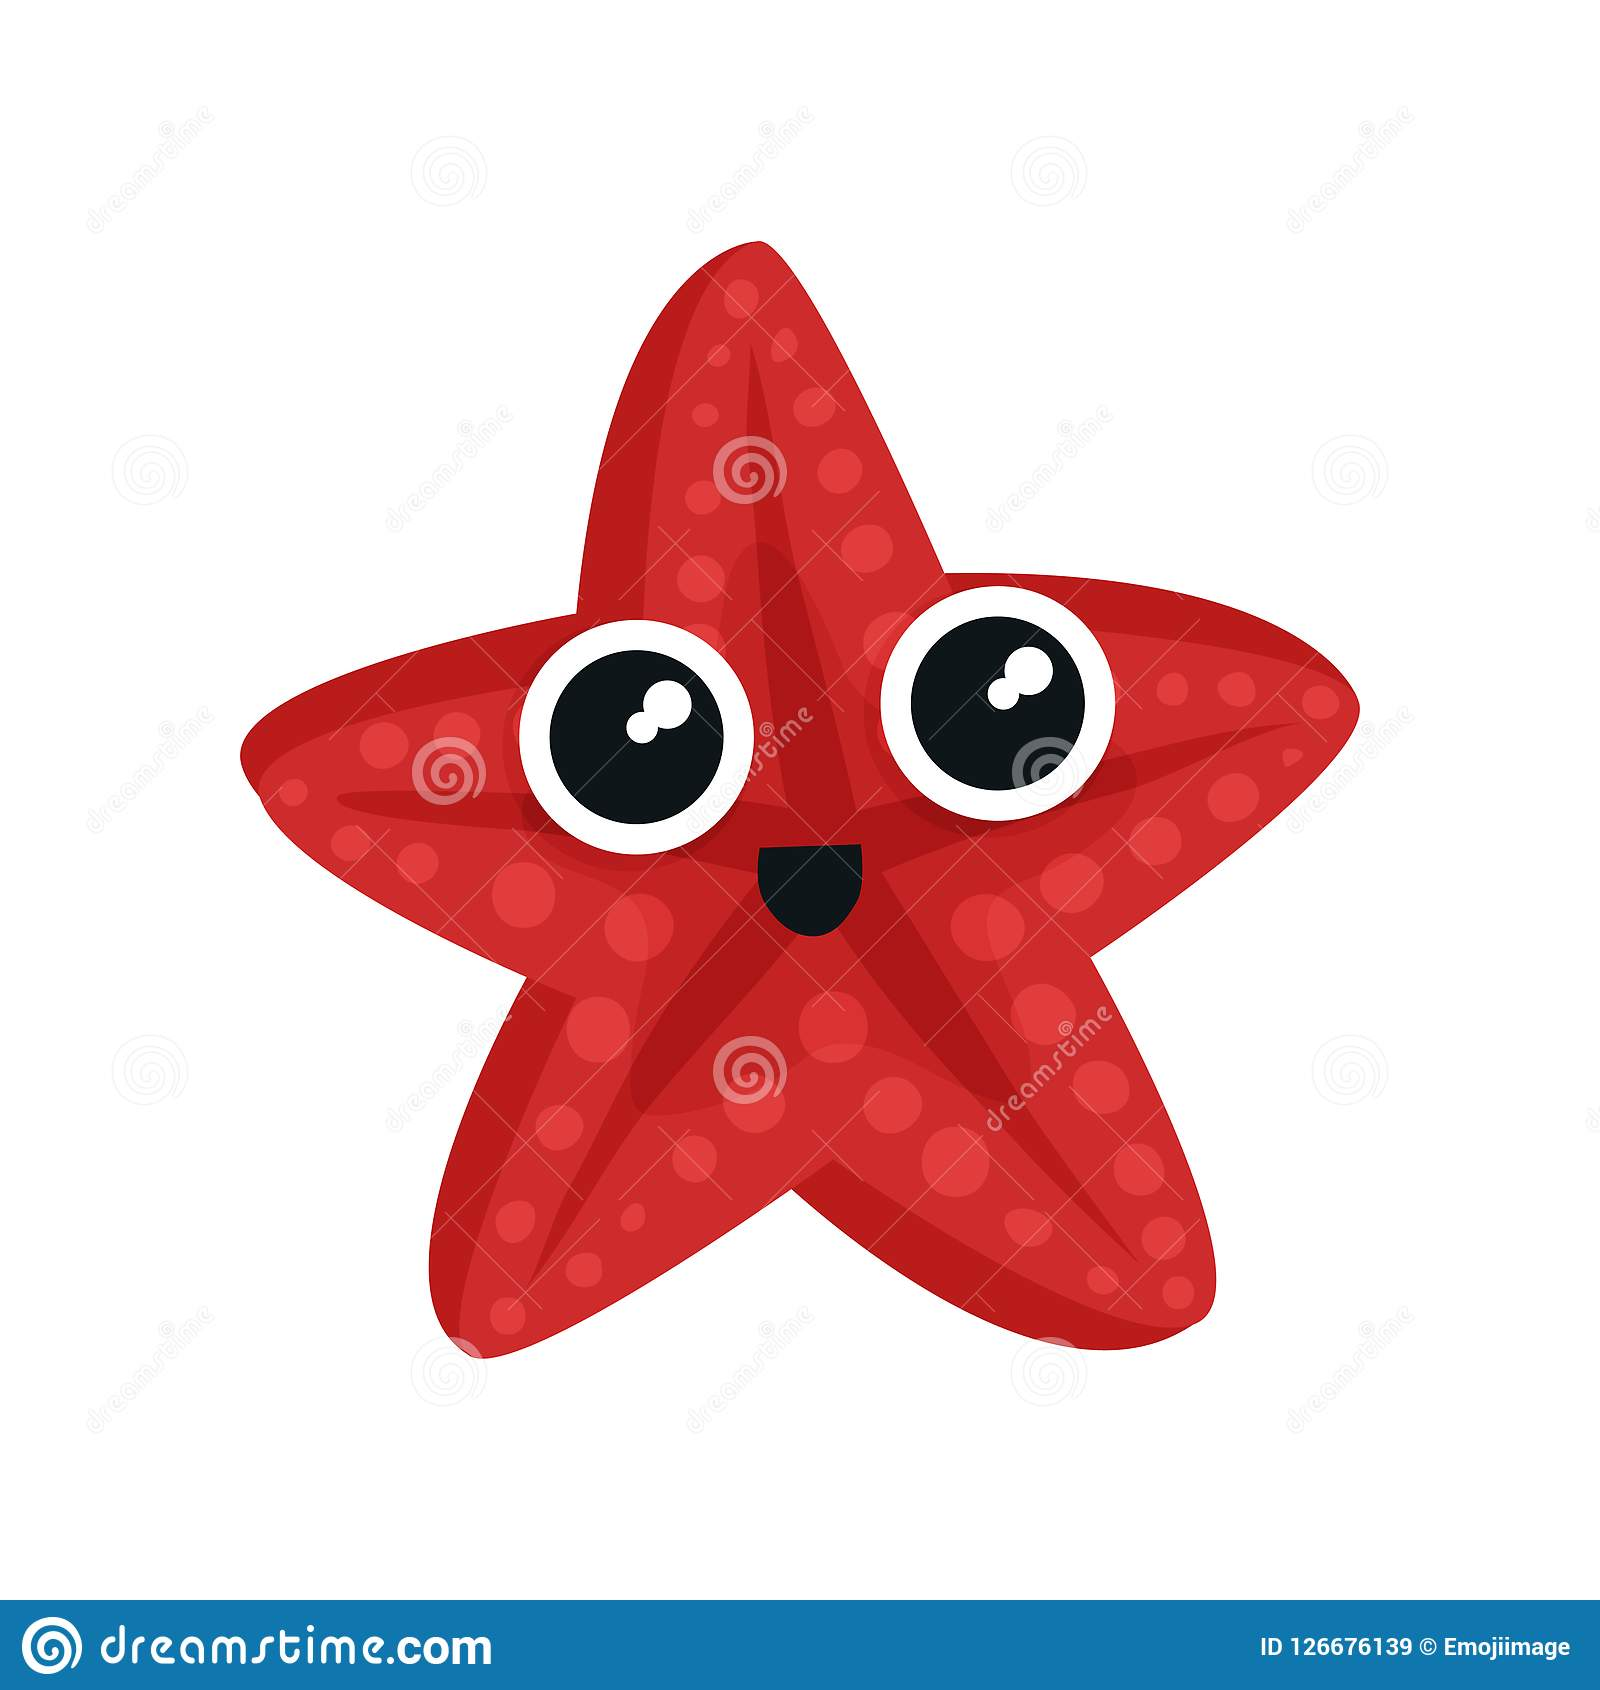 Cute red sea star with big shiny eyes. Adorable marine creature. Small aquatic animal. Flat vector for kids t-shirt